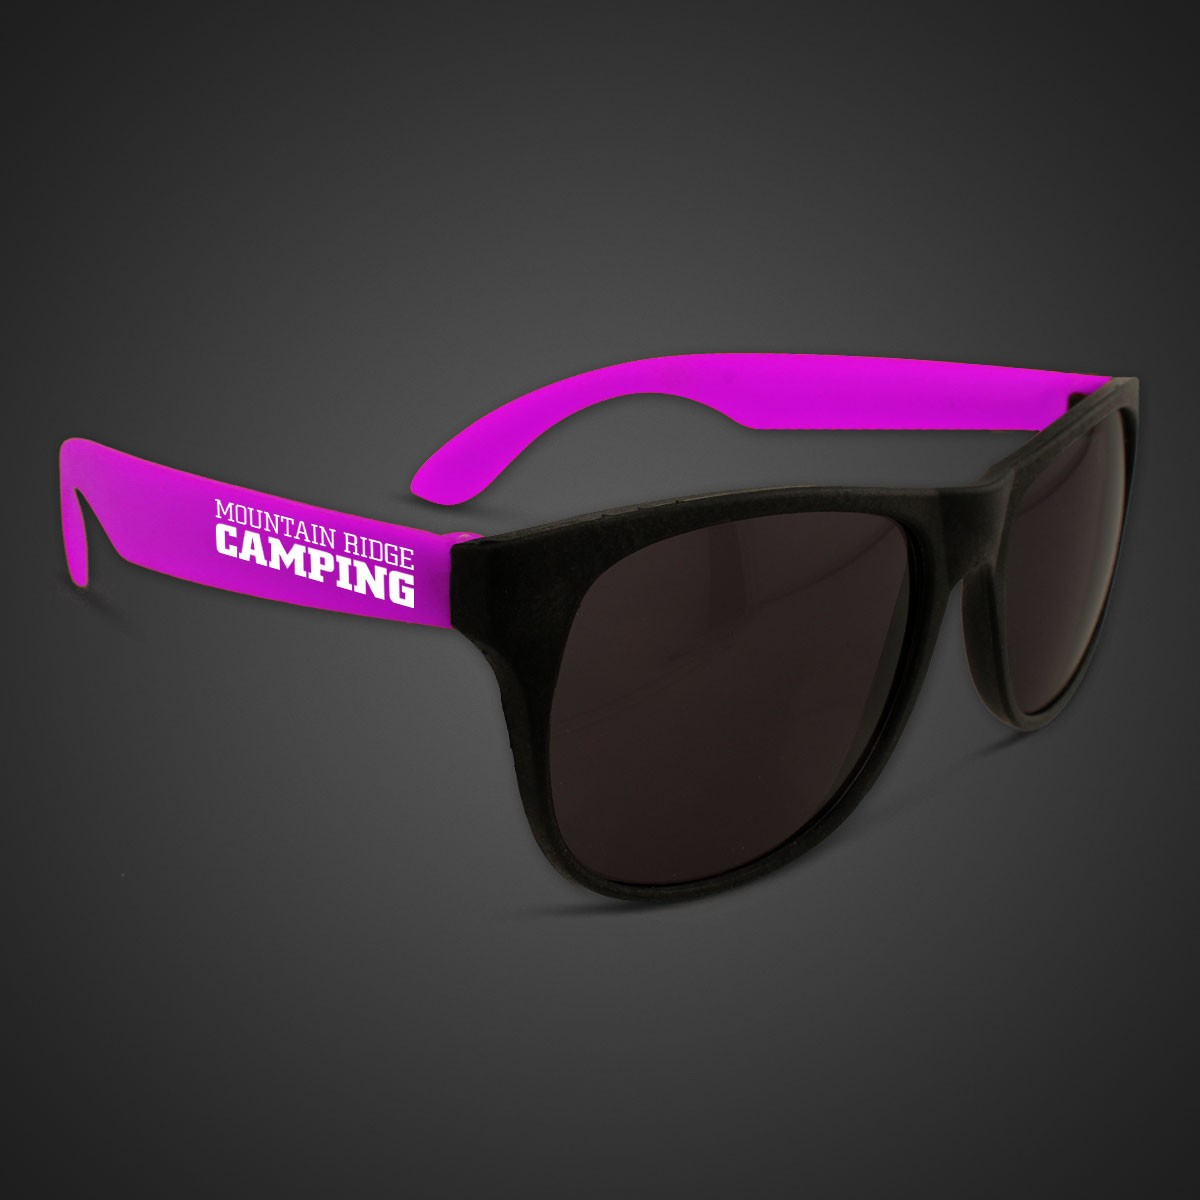 NEON SUNGLASSES WPURPLE ARMS